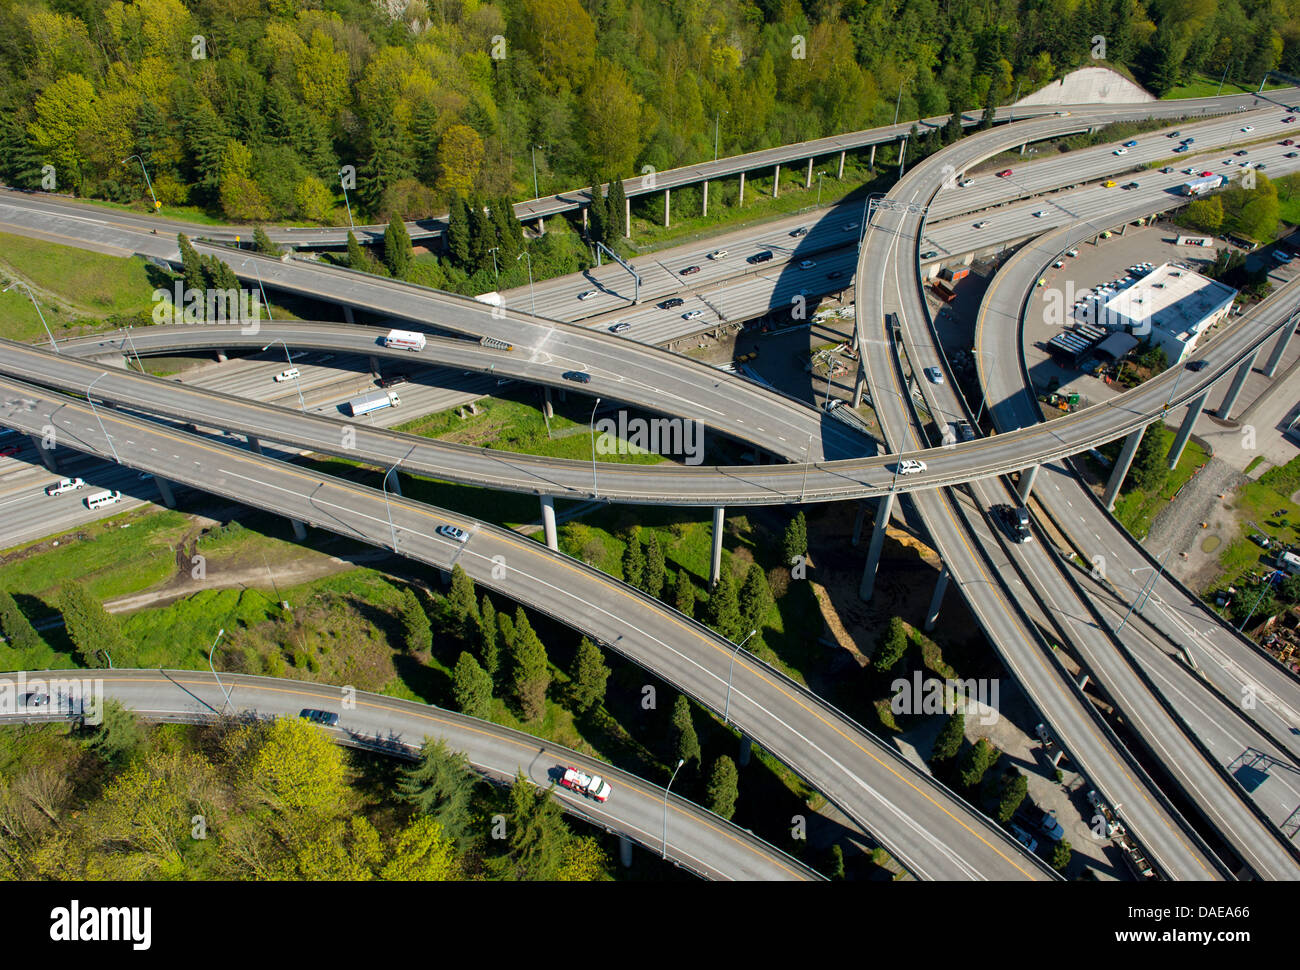 Aerial view of highway flyovers, Seattle, Washington State, USA - Stock Image